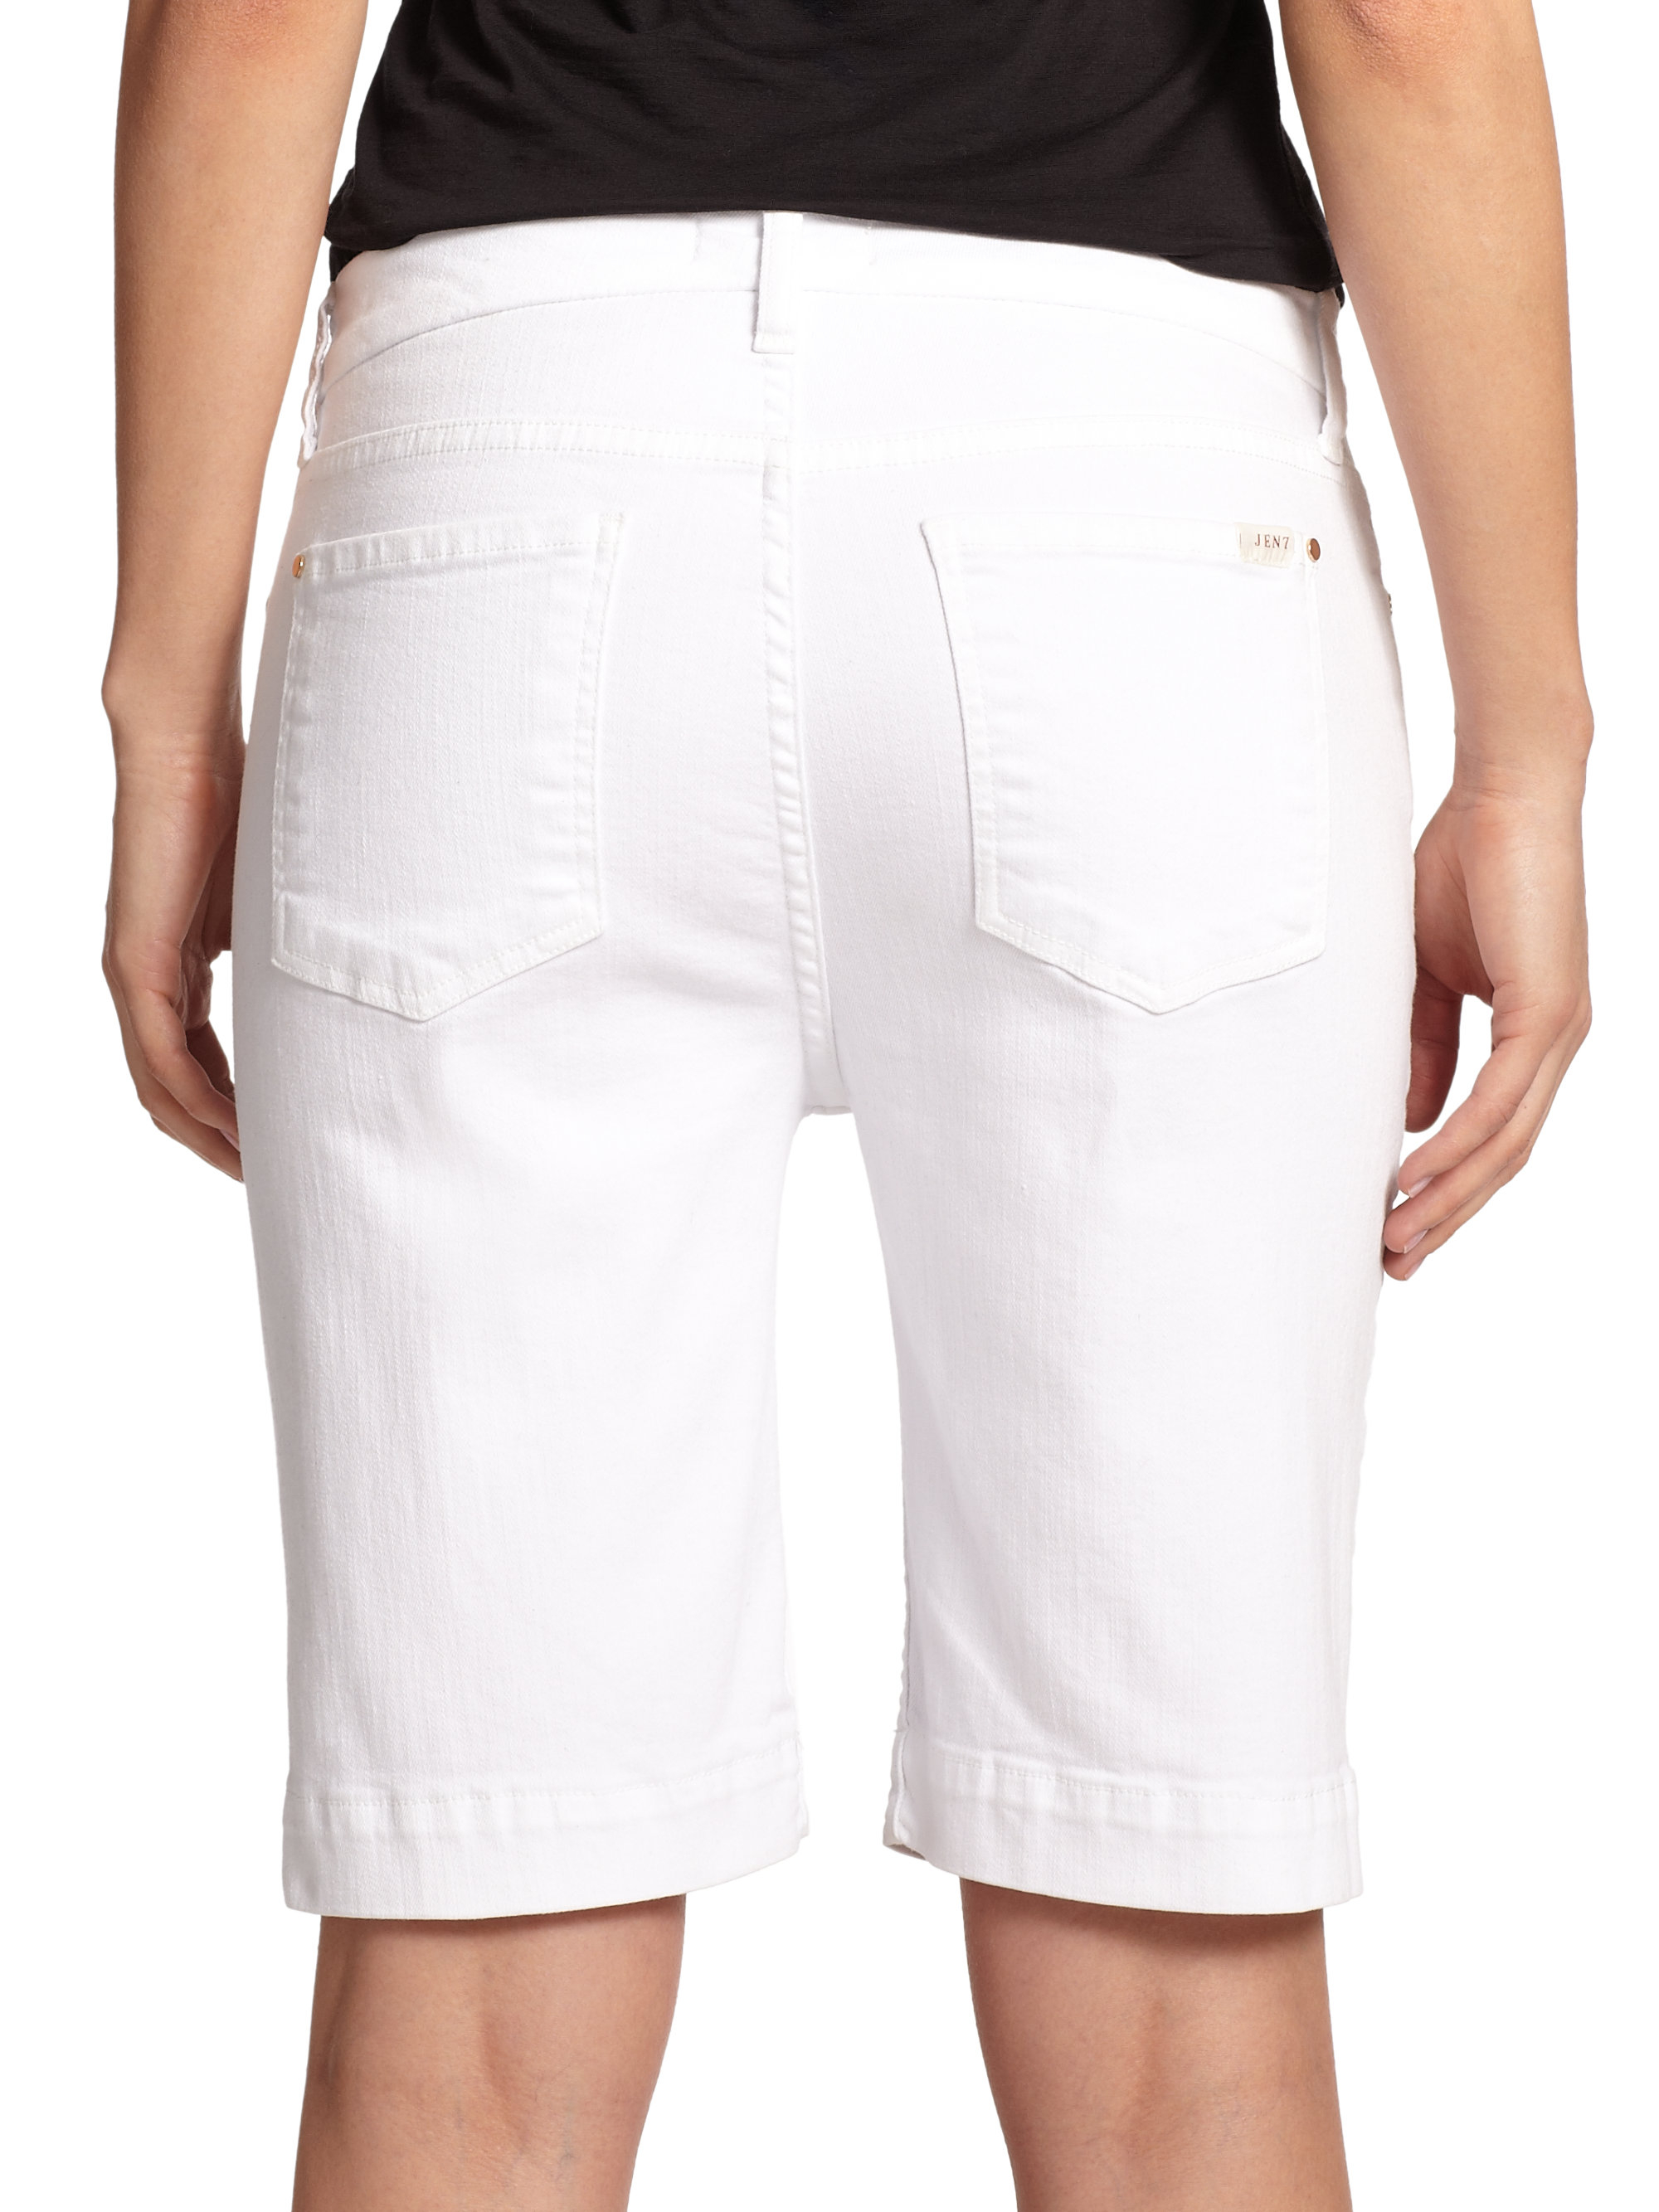 These high-waisted Bermuda shorts are made of a soft cotton denim with just the right amount of stretch and feature rips and shreds down the thighs and frayed hems.